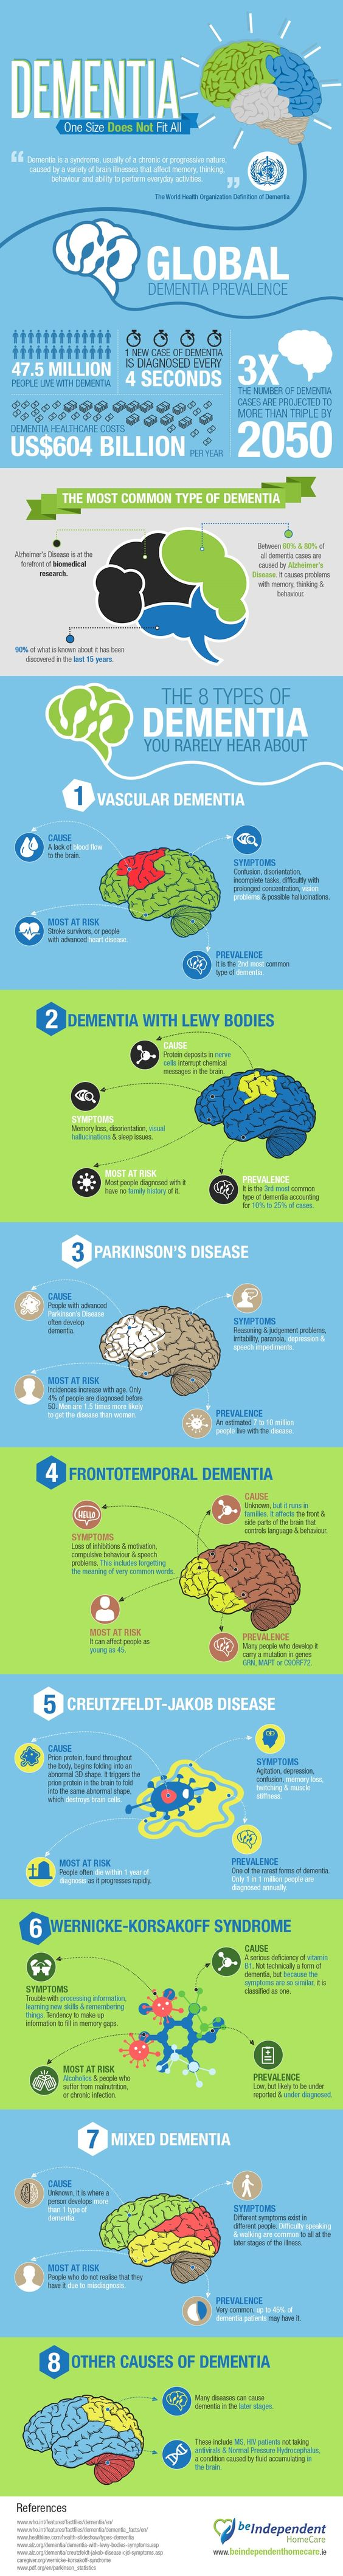 This is one of my favourite #infographics The 8 types of #dementia you rarely hear about